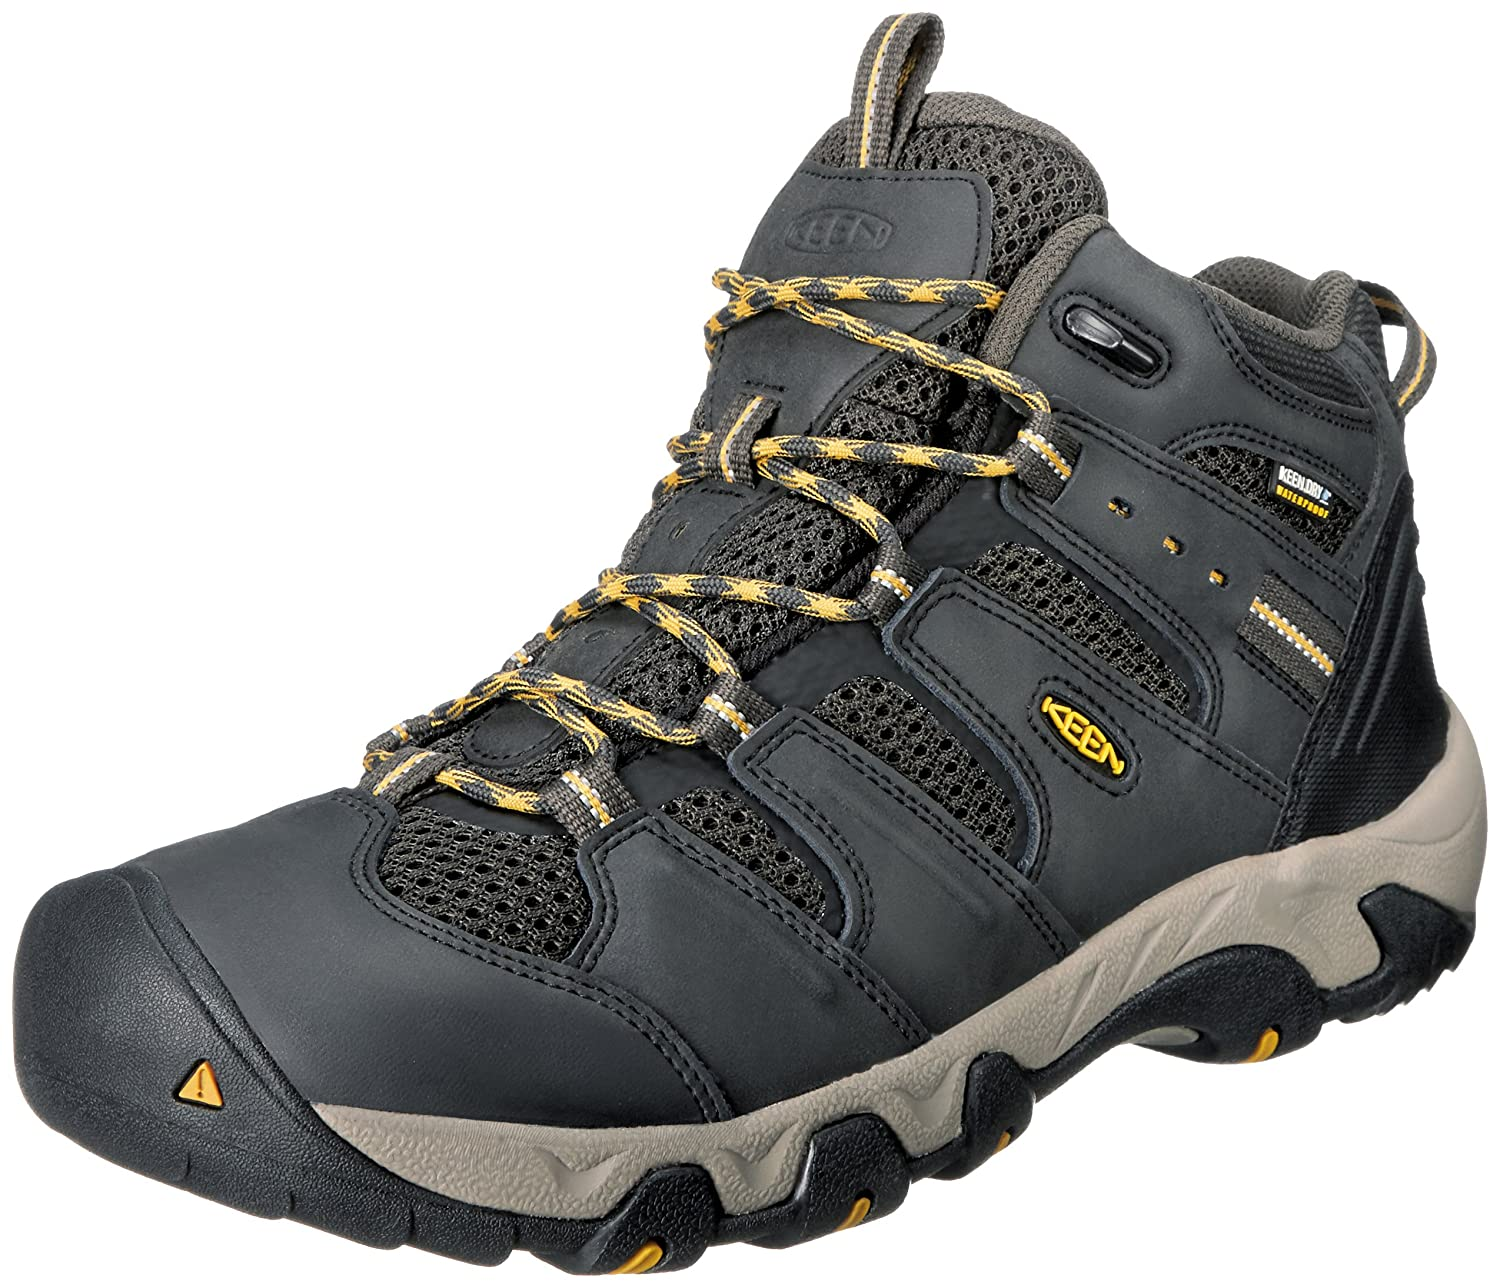 b536e0d3d10 KEEN Men's Koven Mid Wp Low Rise Hiking Boots